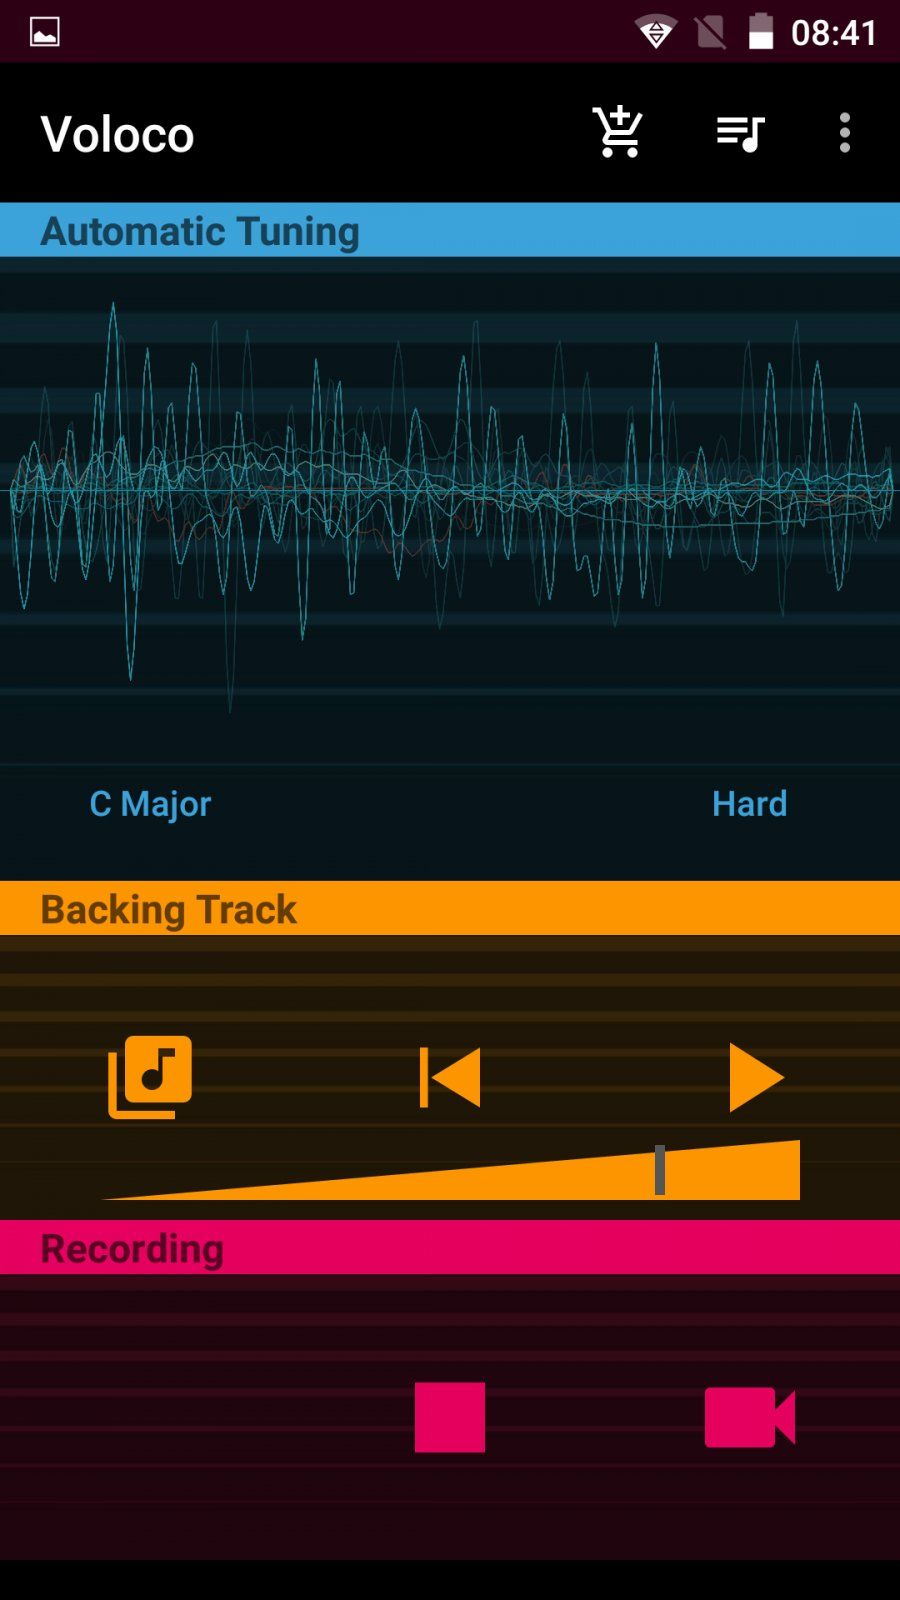 Requirements: 2 3+ Overview: Voloco Auto Tune Application Download